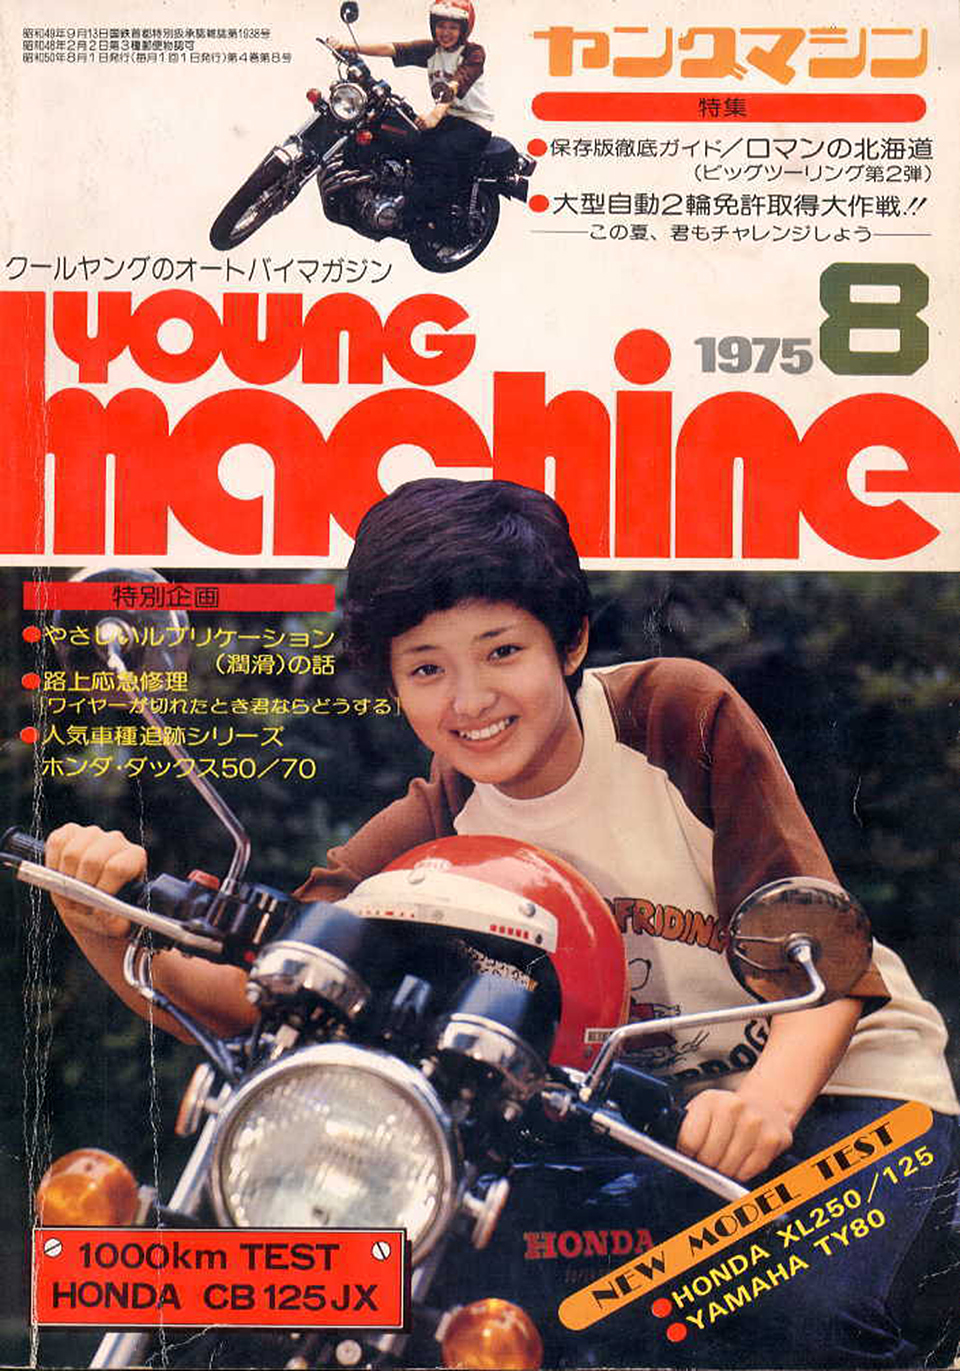 Young-Machine-1975-Honda-CB400F-1975-1